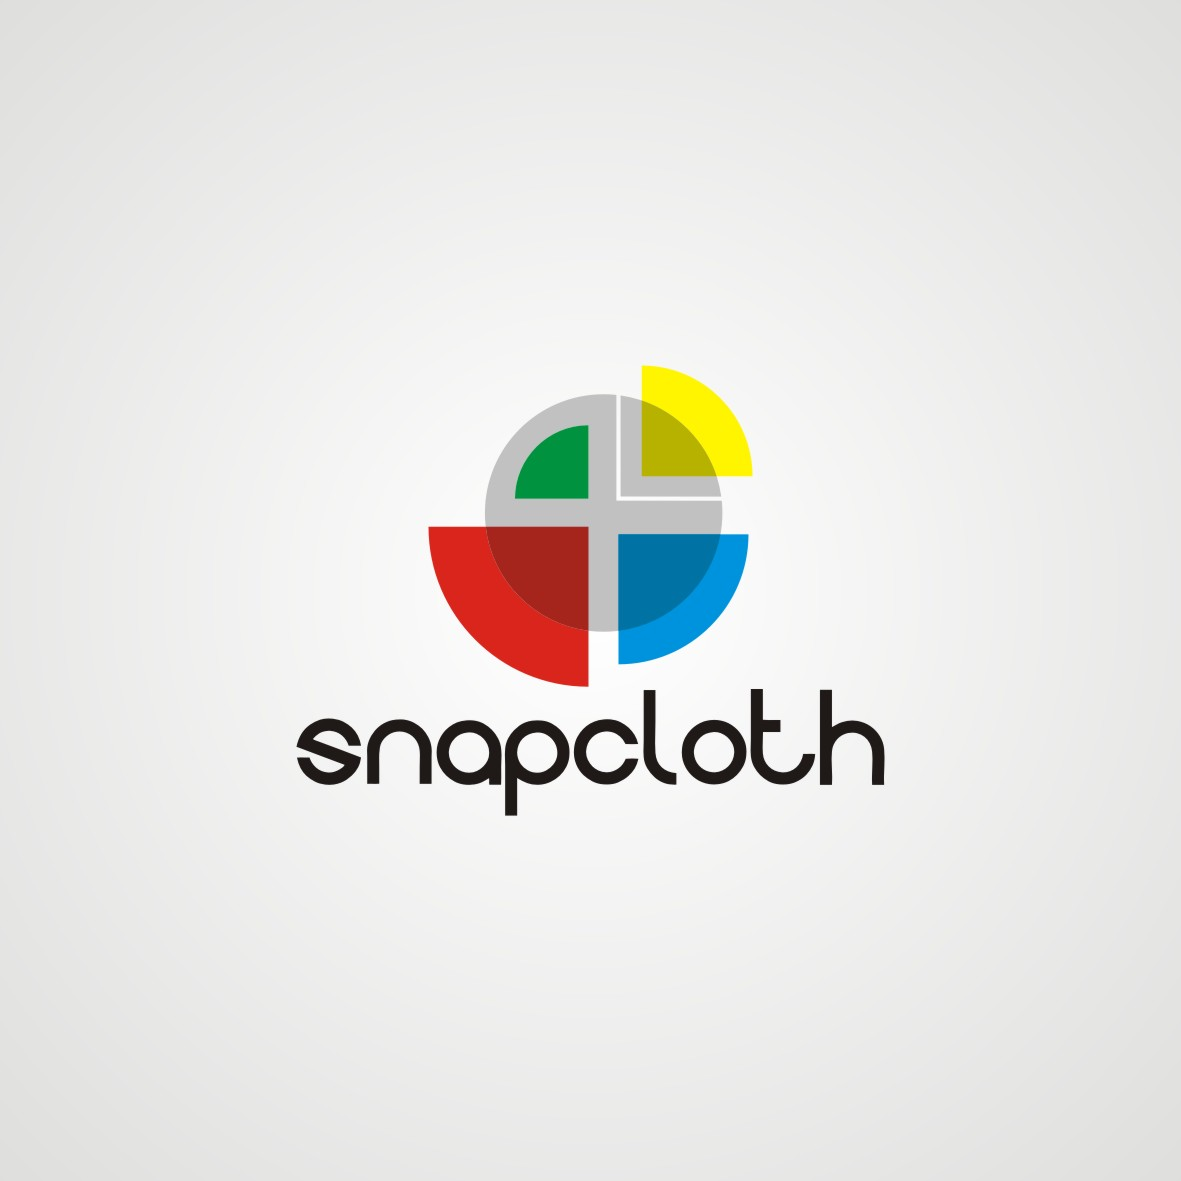 Logo Design by arteo_design - Entry No. 71 in the Logo Design Contest Snapcloth Logo Design.